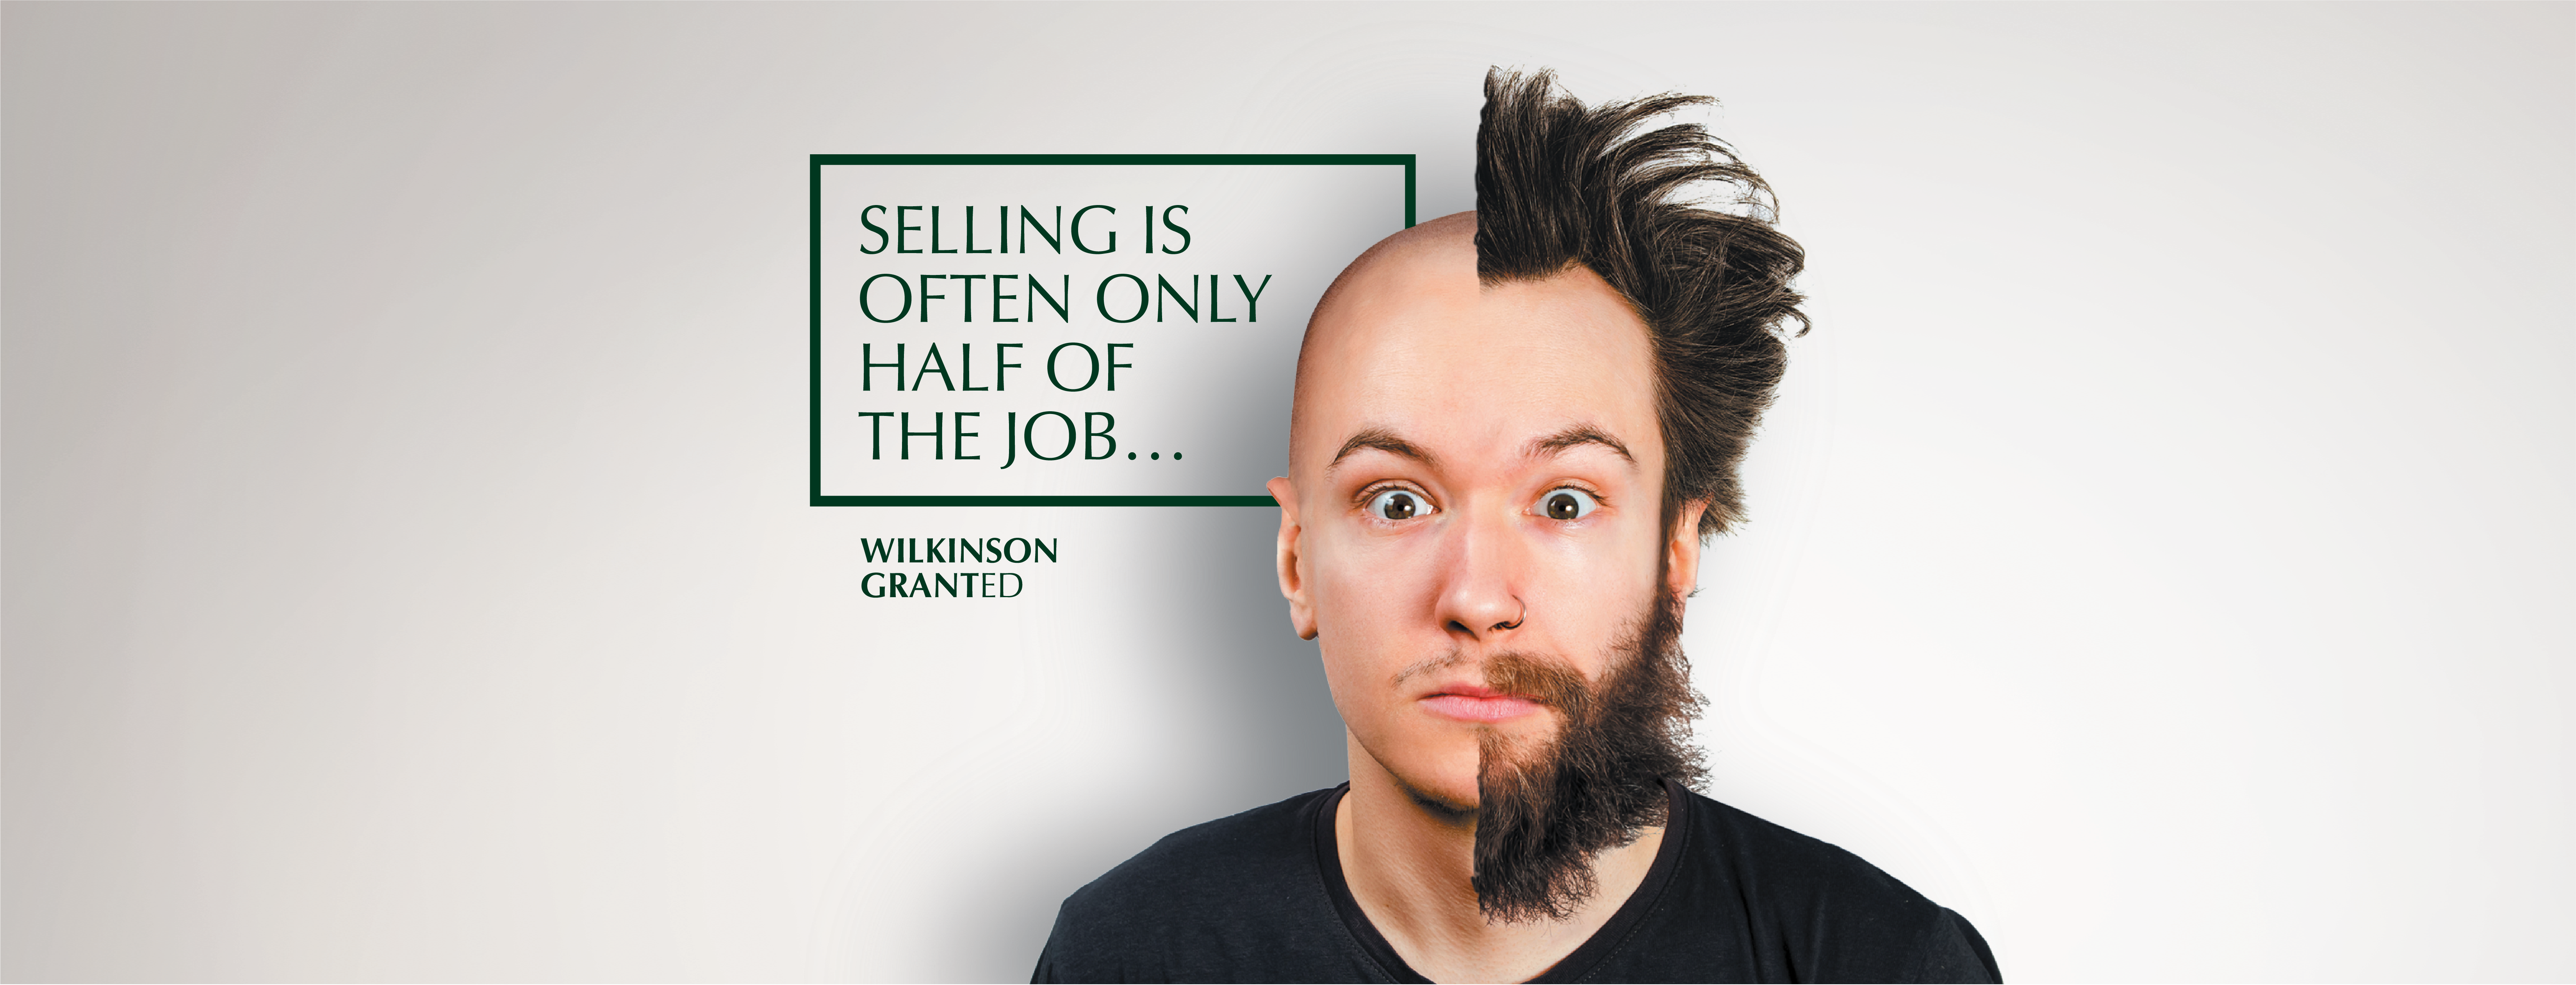 Often, selling a property is just half the job